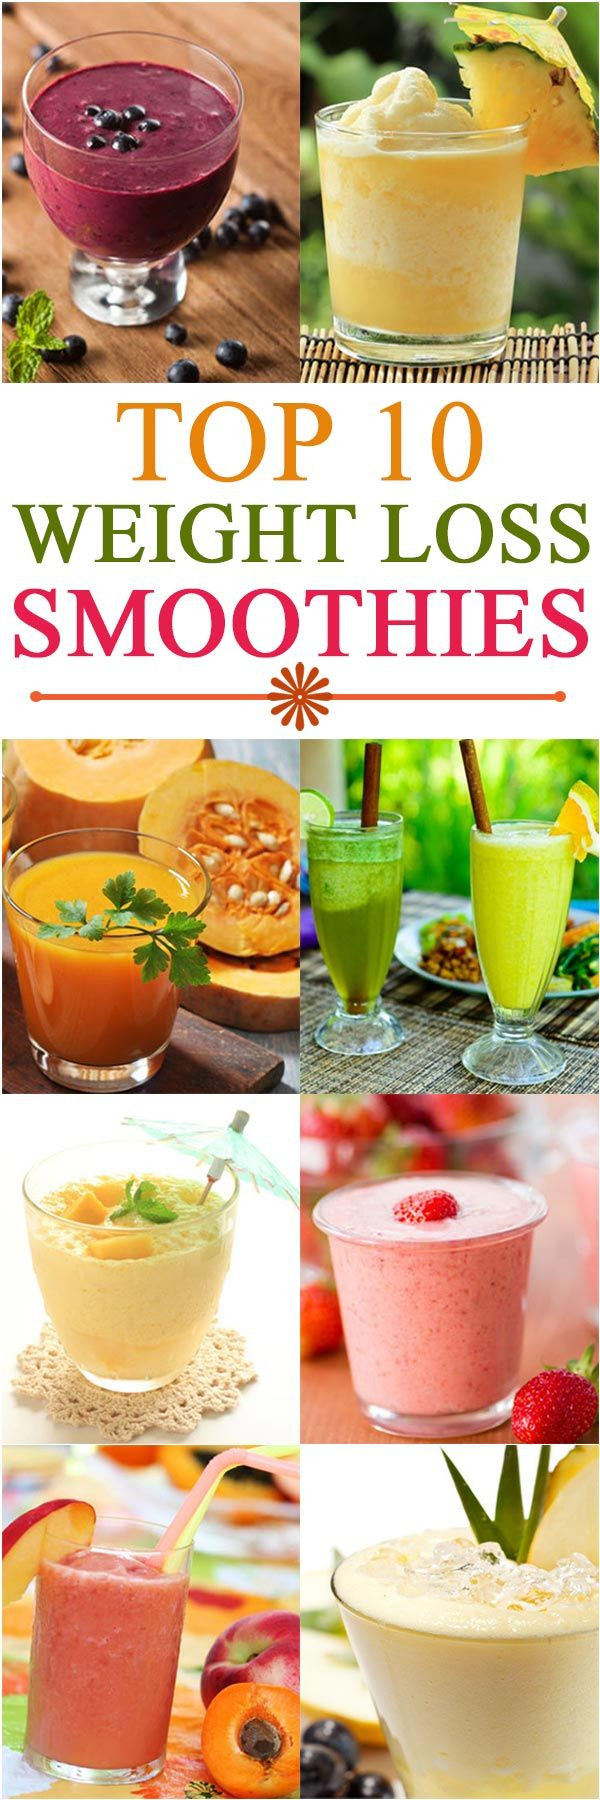 Healthy Blender Recipes For Weight Loss  Best 25 Healthy Blender Recipes ideas on Pinterest